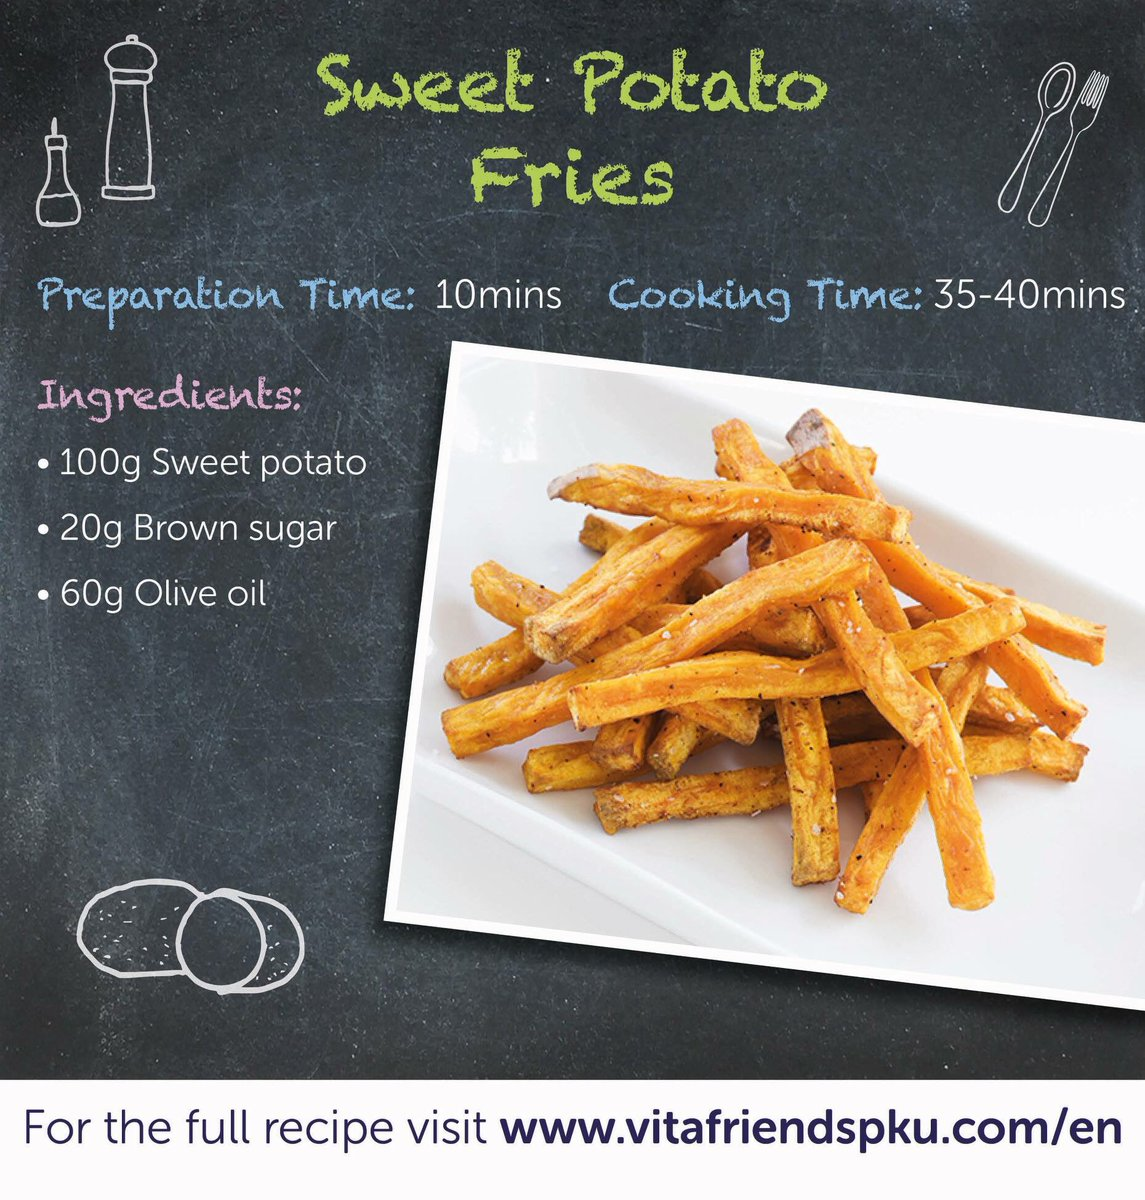 What&#39;s the best part of a Chippy Fakeaway? Chips of course! Check out this delicious Sweet Potato Fries recipe and watch this space over the next few days for low protein sauces and dips for ultimate dunking success!  https://www. vitafriendspku.com/en/recipes/swe et-potato-fries/ &nbsp; …  #pku #pkurecipes #FakeawayMay<br>http://pic.twitter.com/pVHCc4e1FL